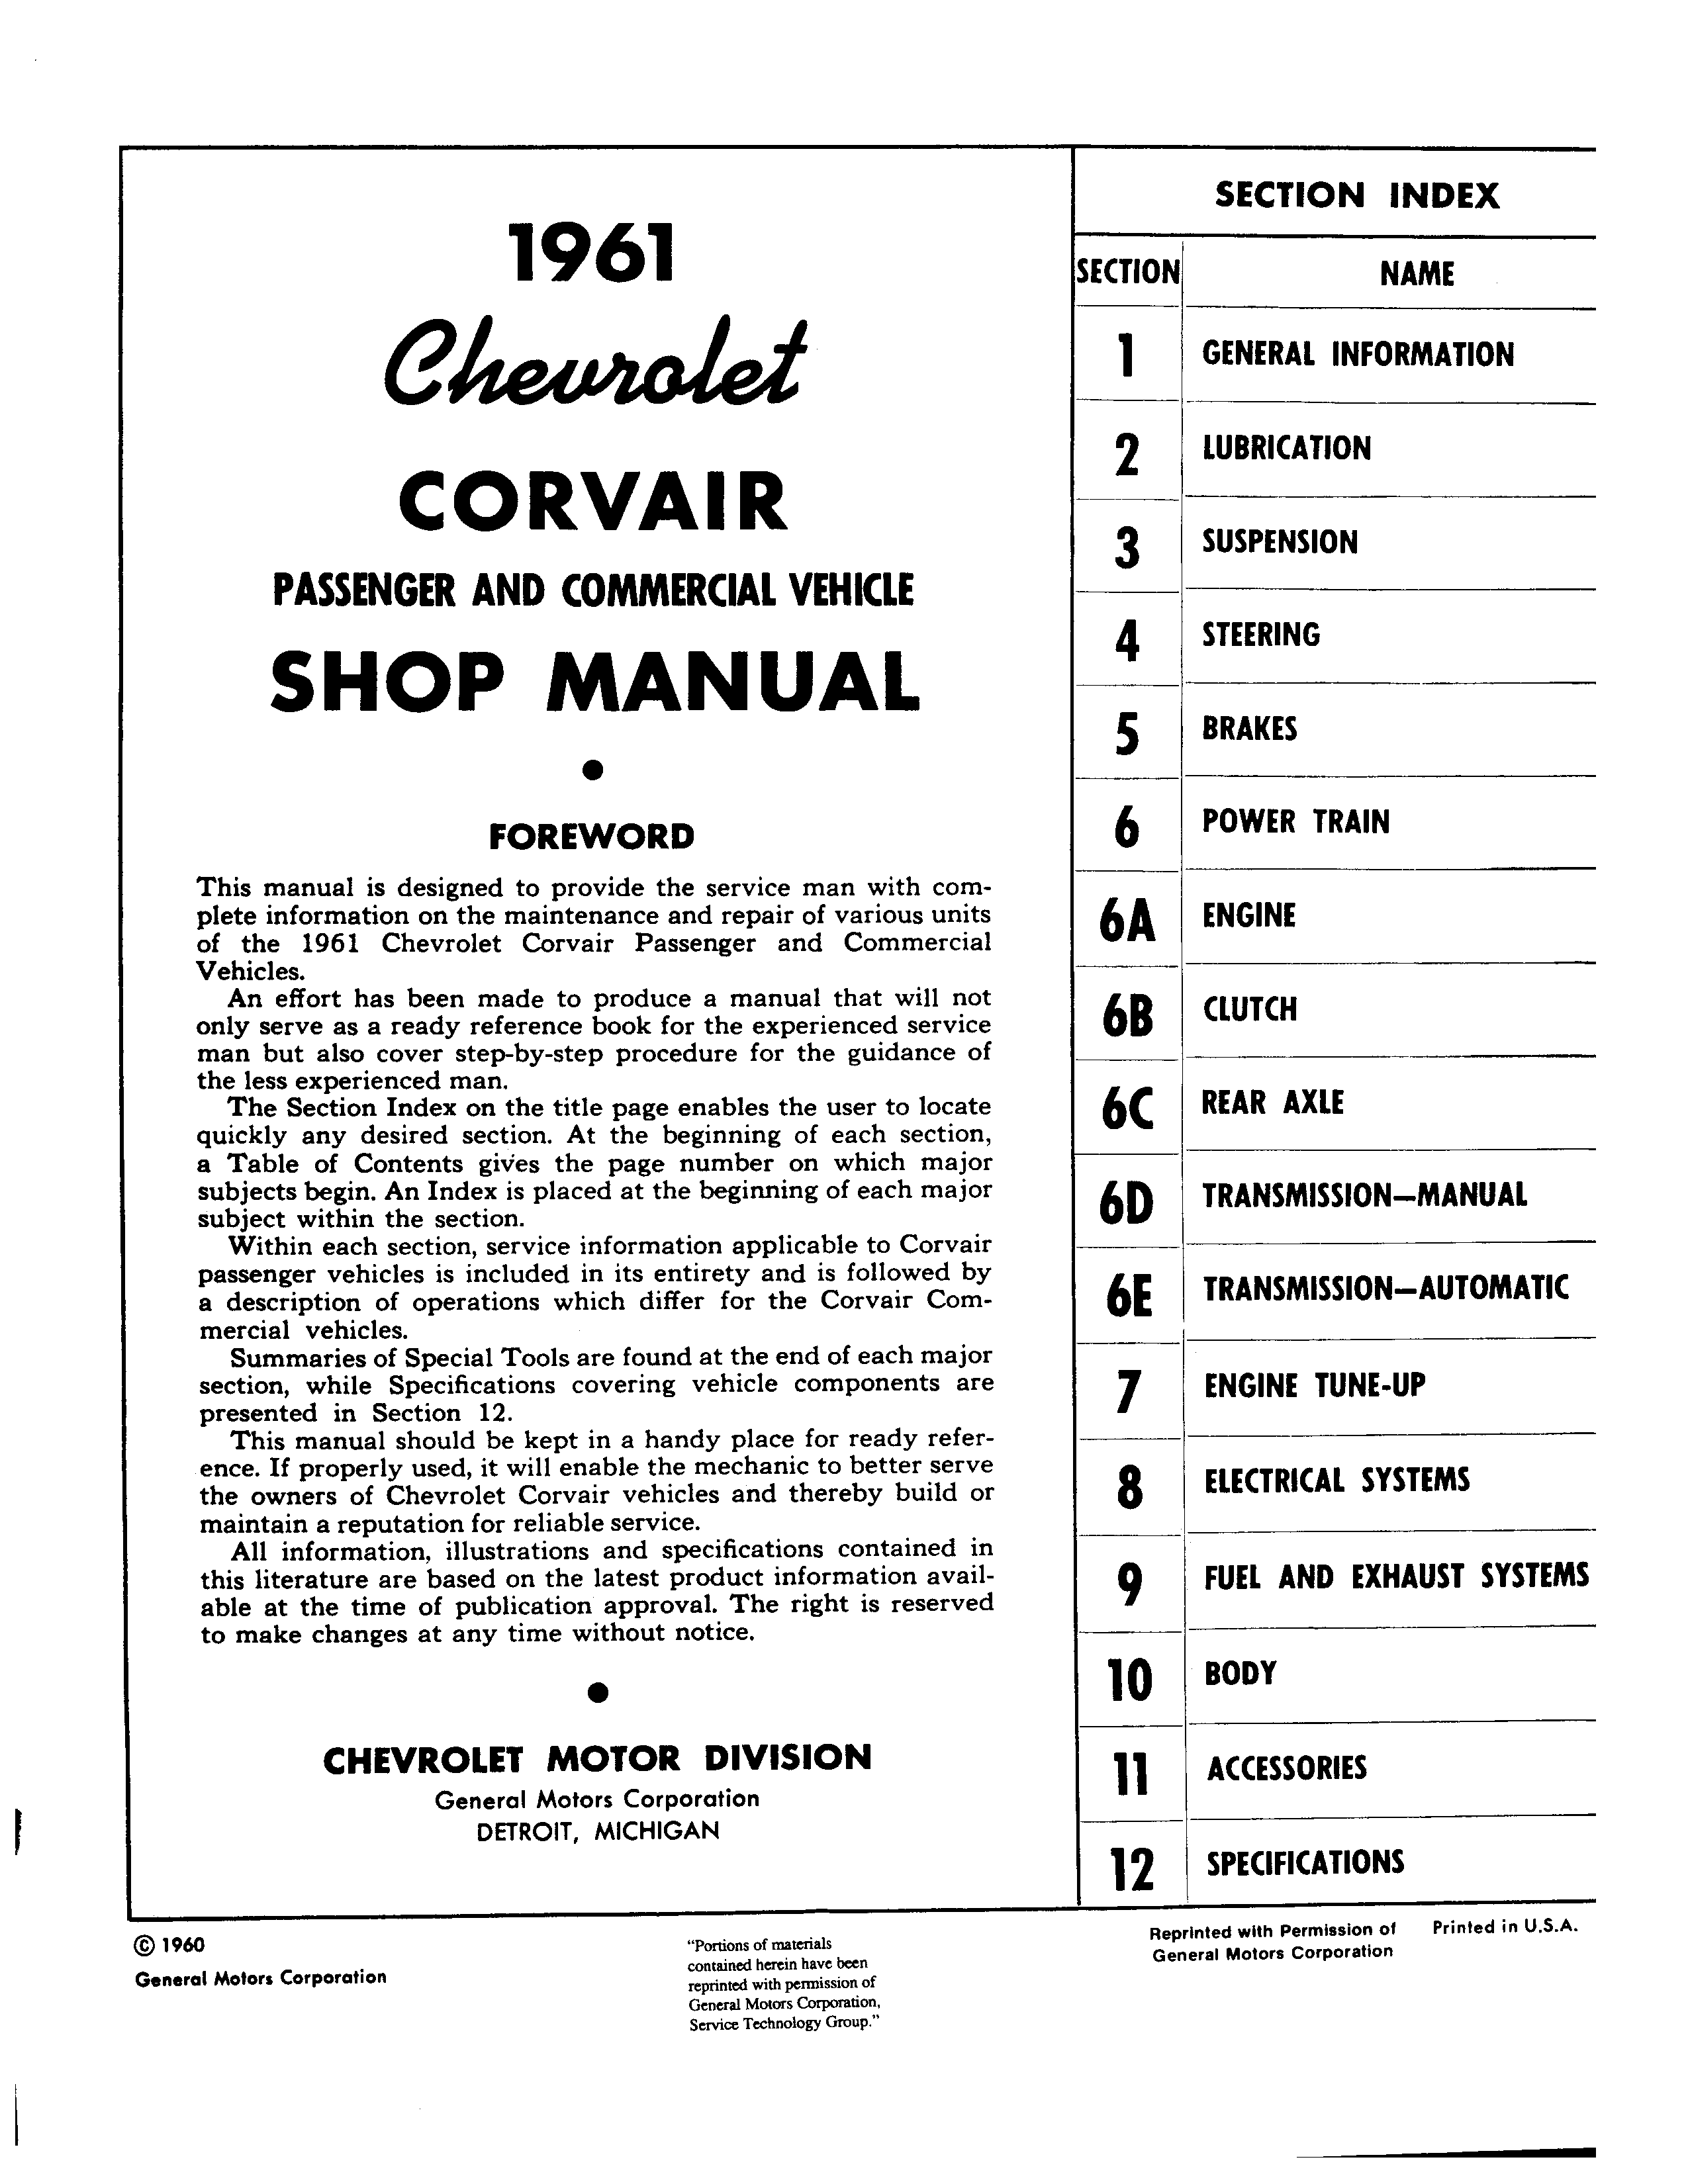 Corvair Shop Manual January 1961